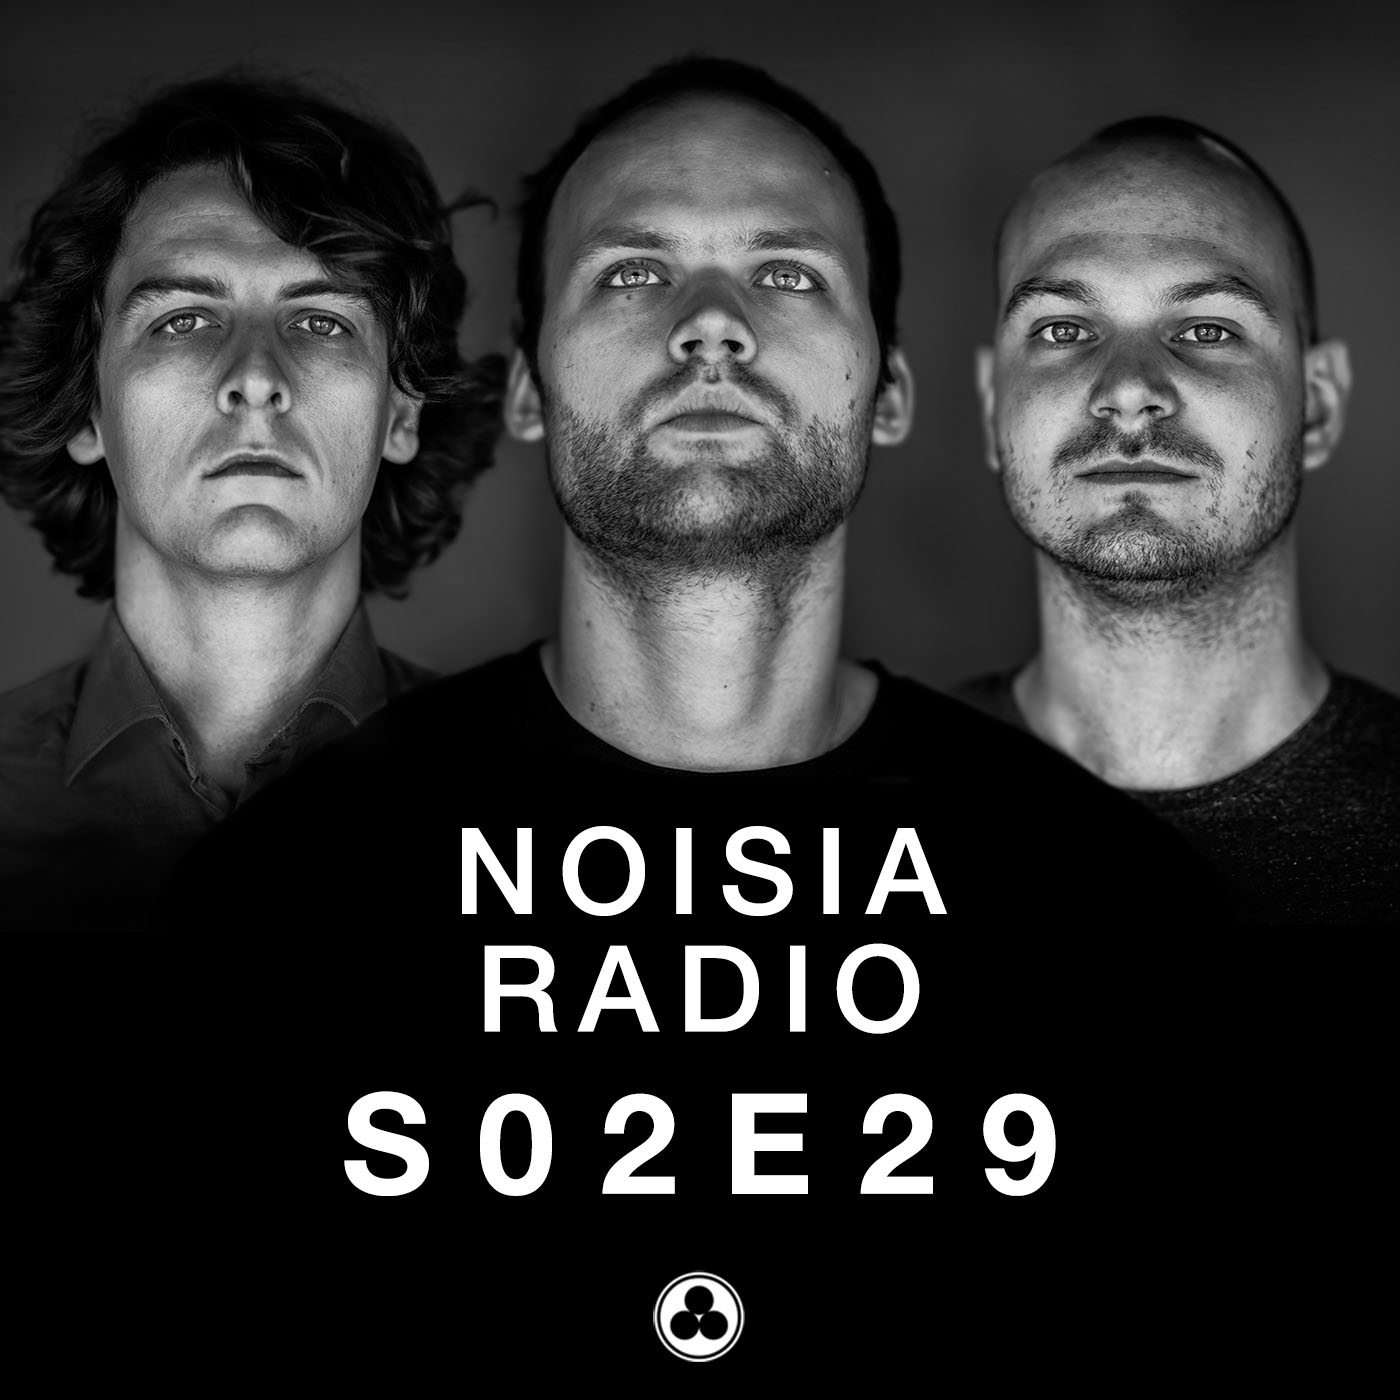 Noisia Radio S02E29